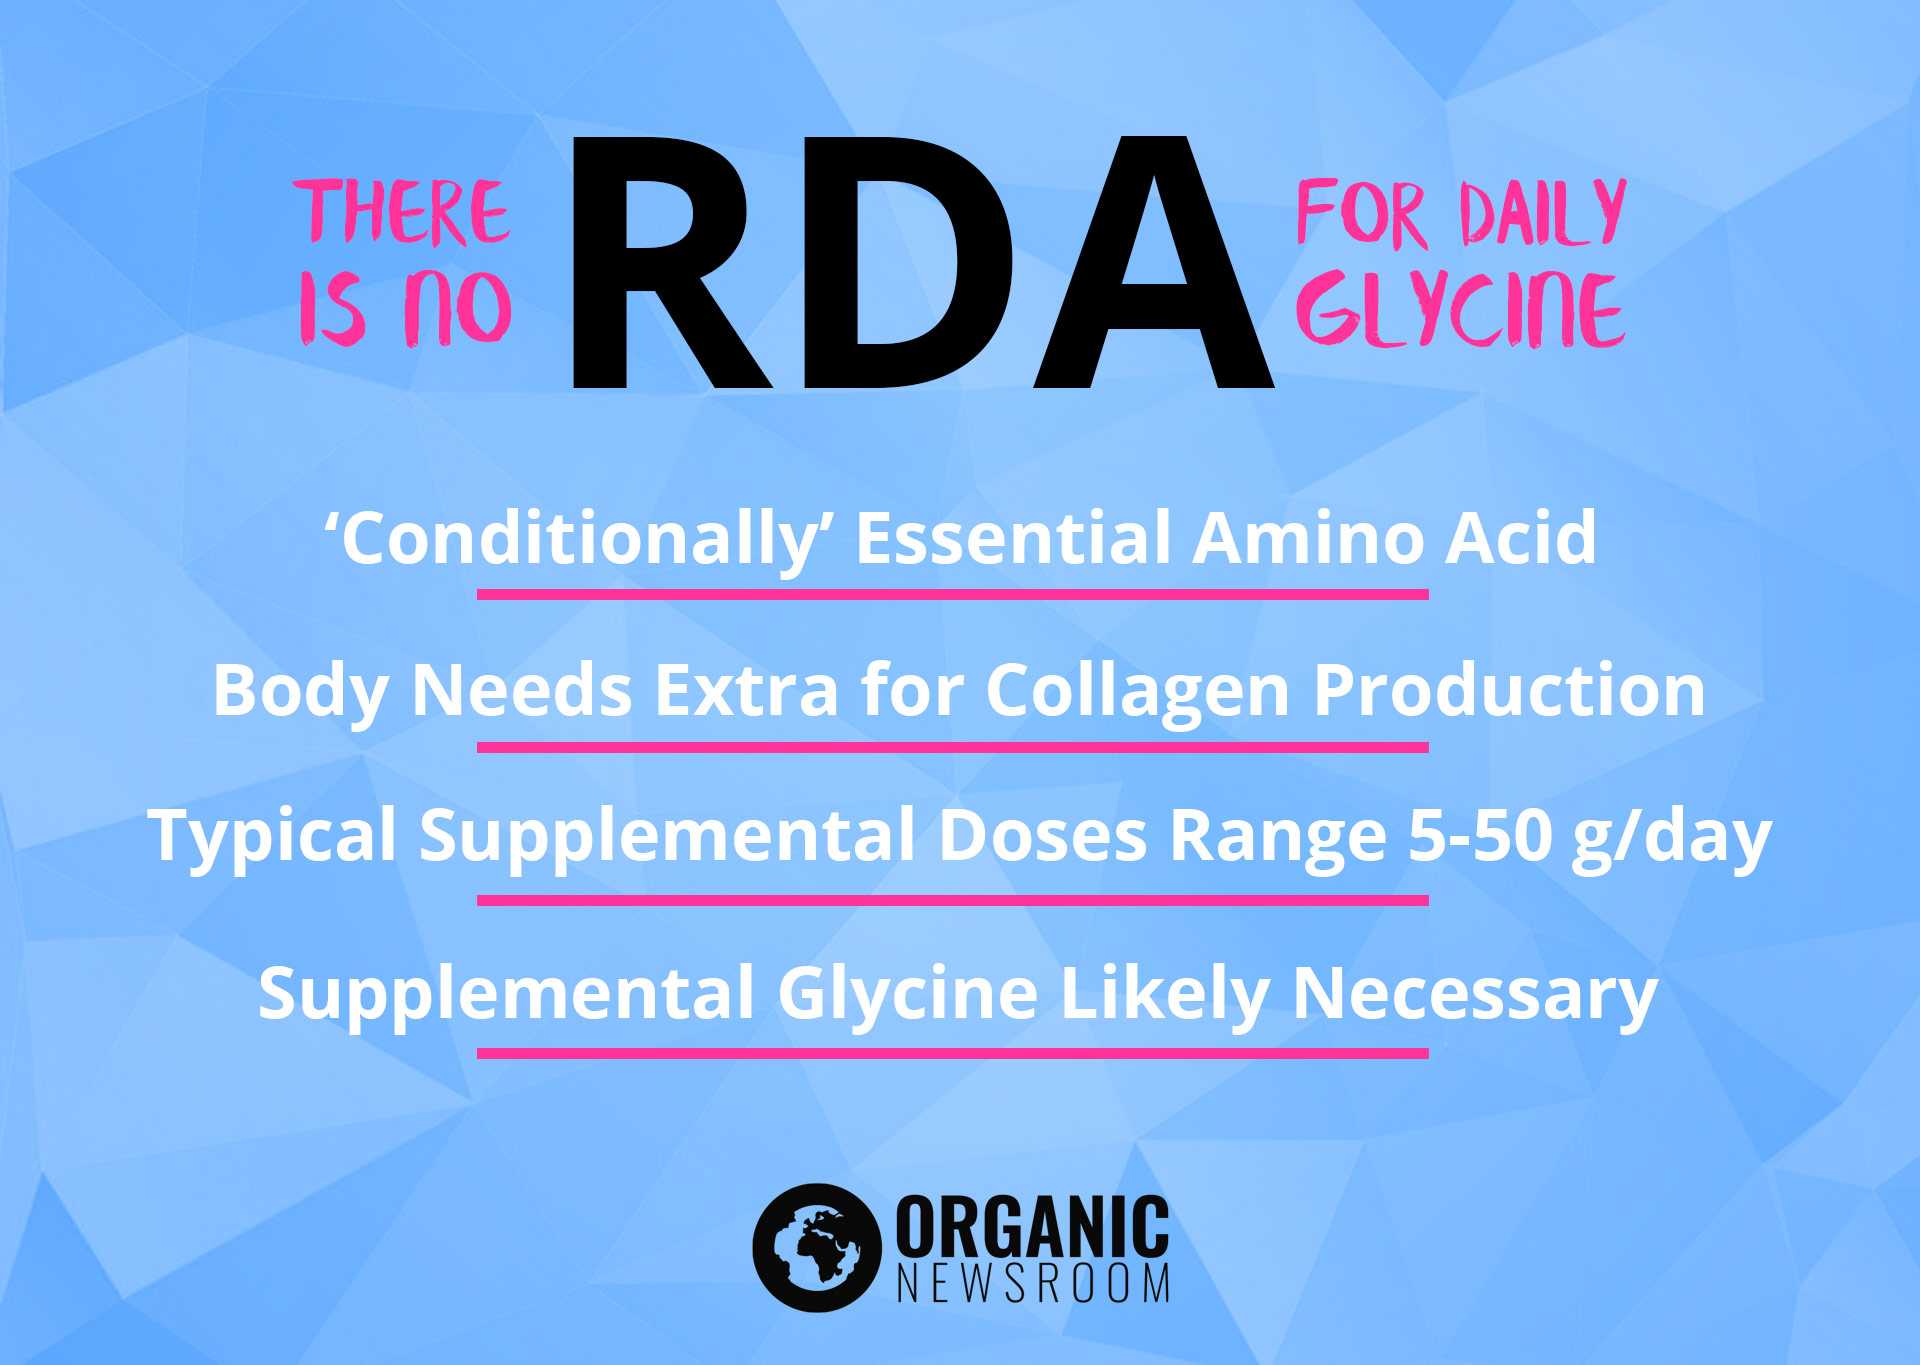 Recommended Daily Allowance for Glycine OrganicNewsroom